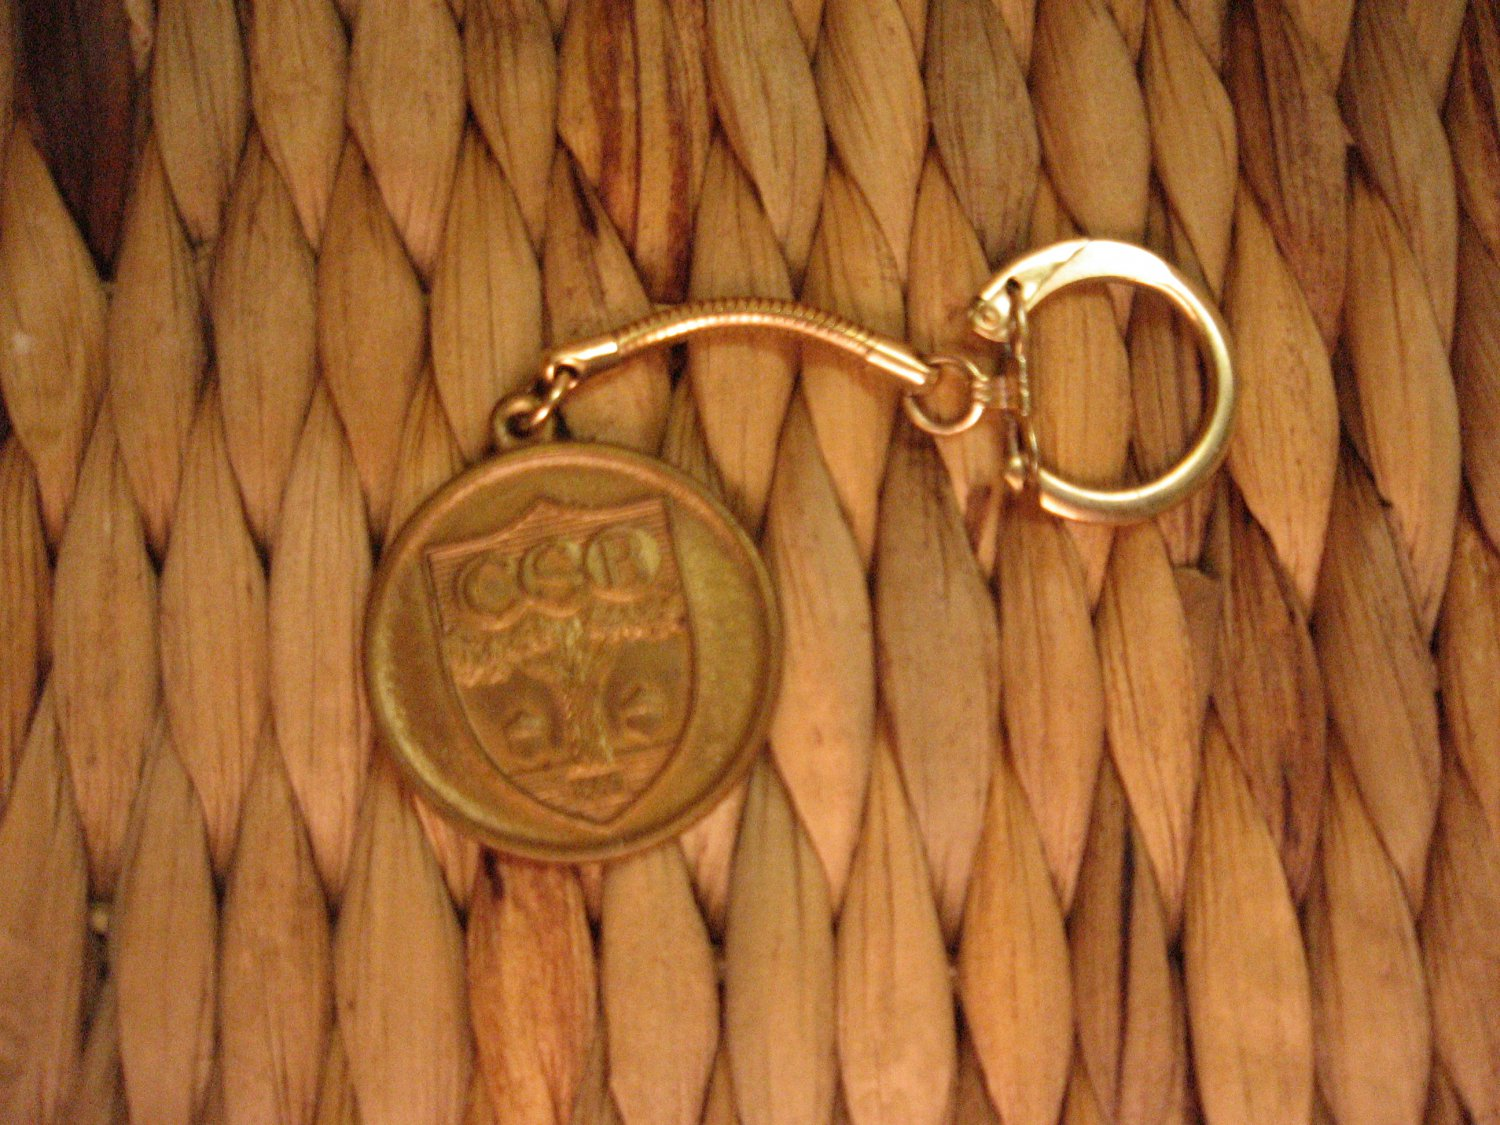 Vintage Community Savings Bank of Rochester New York Medal Fob  Key Chain